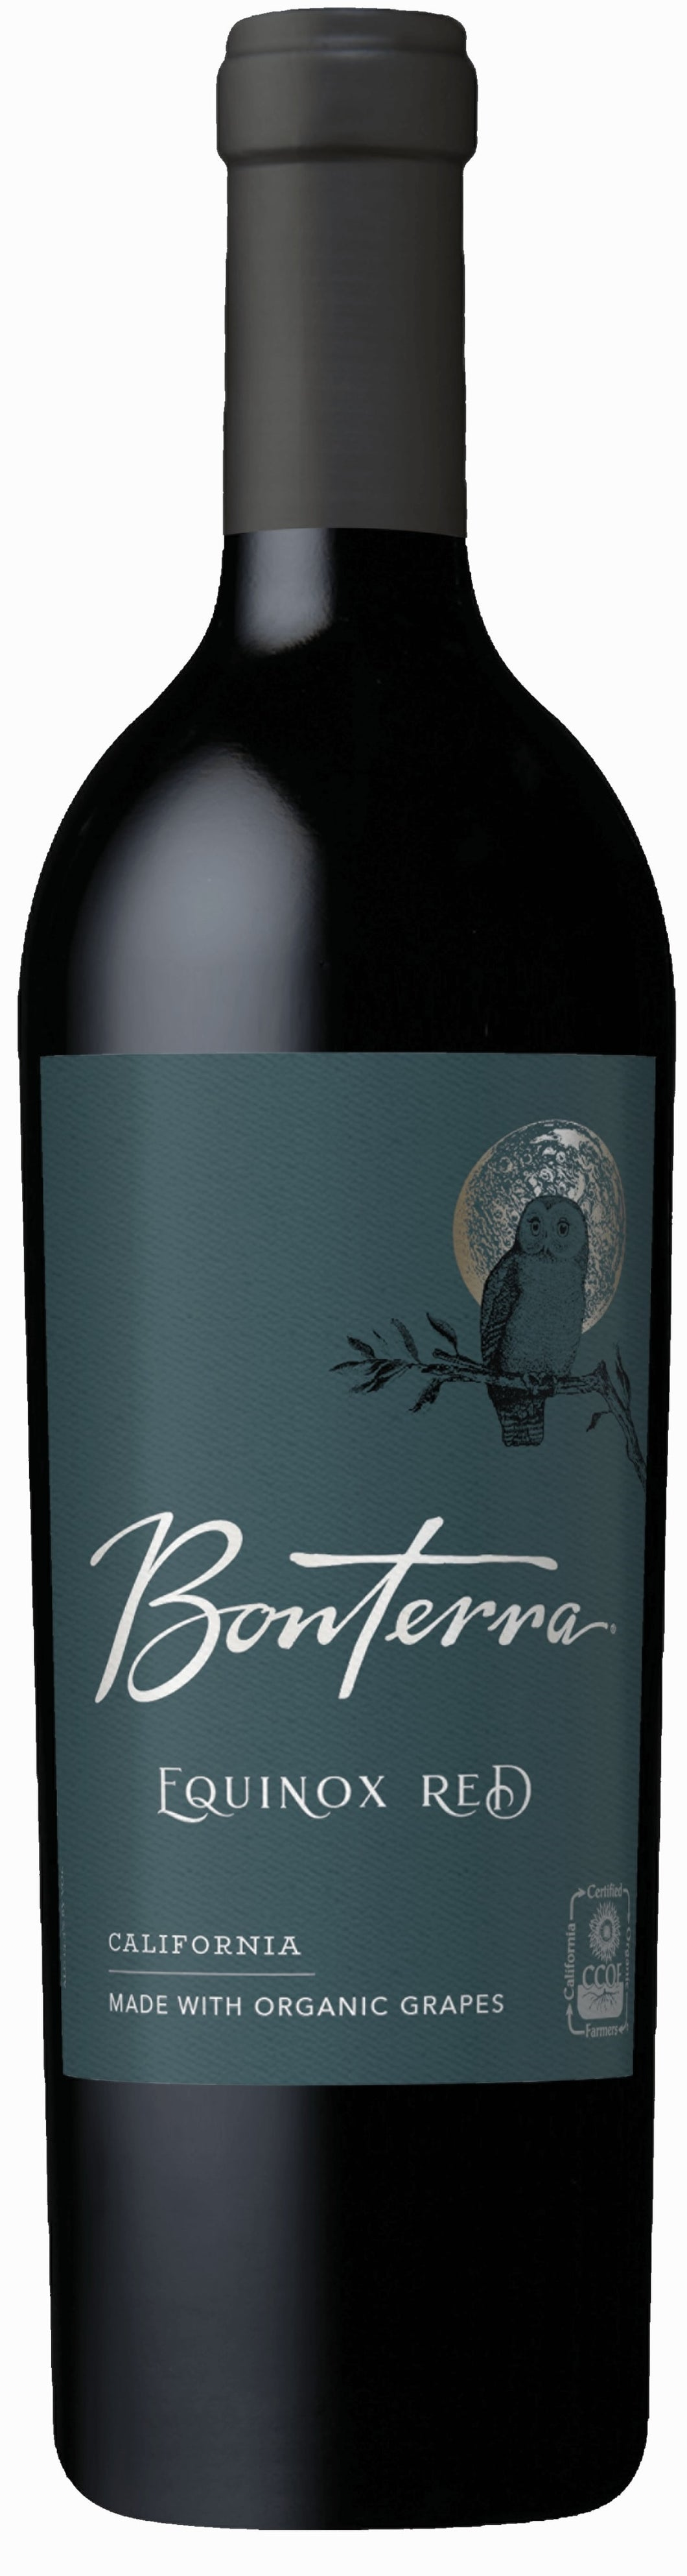 Bonterra Equinox Red 2018